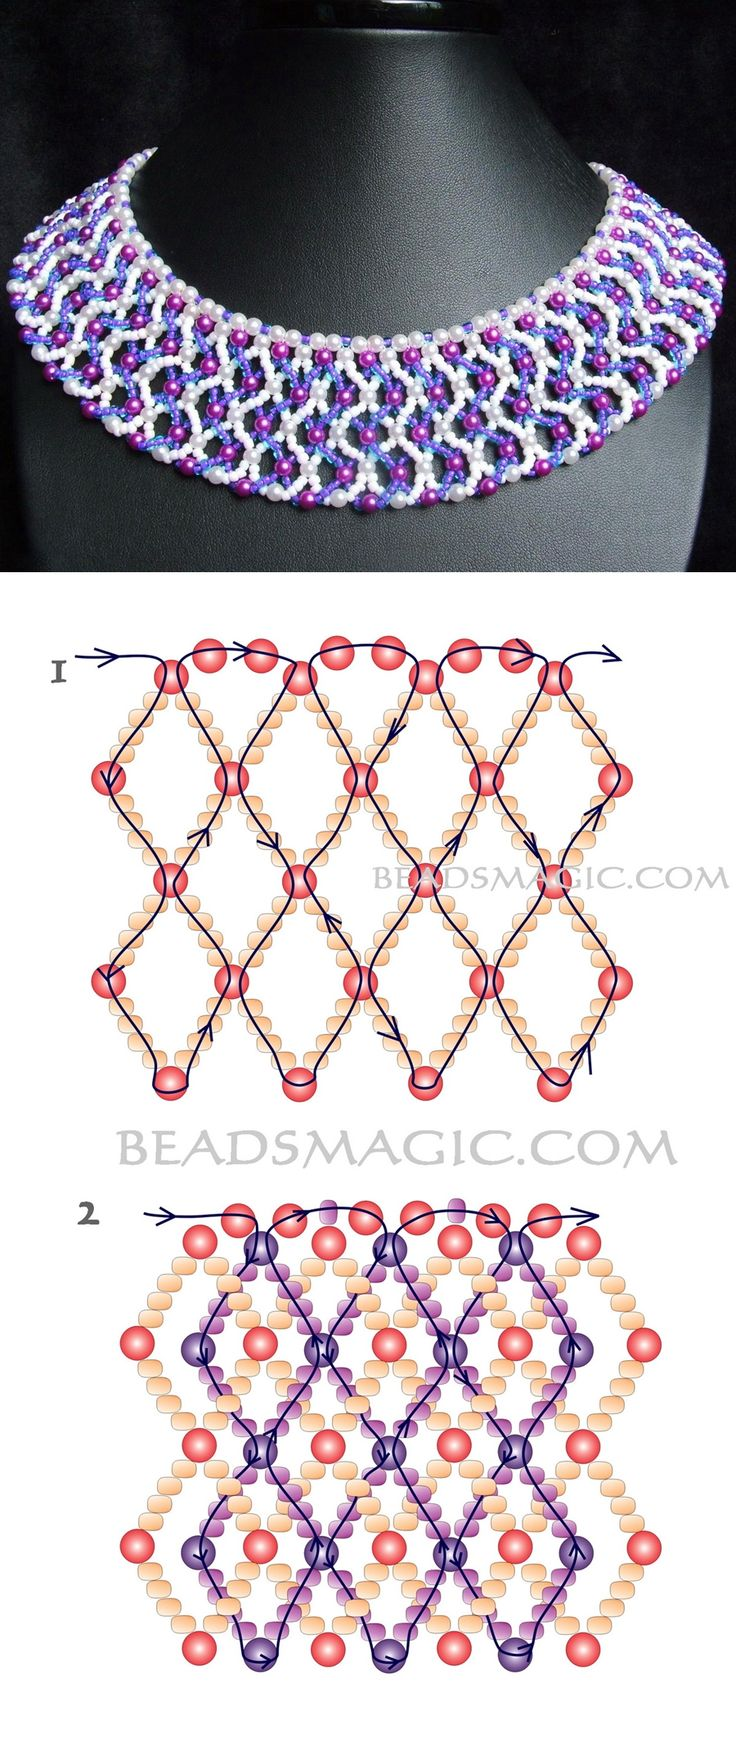 17 best images about tutorials beading stitches netting